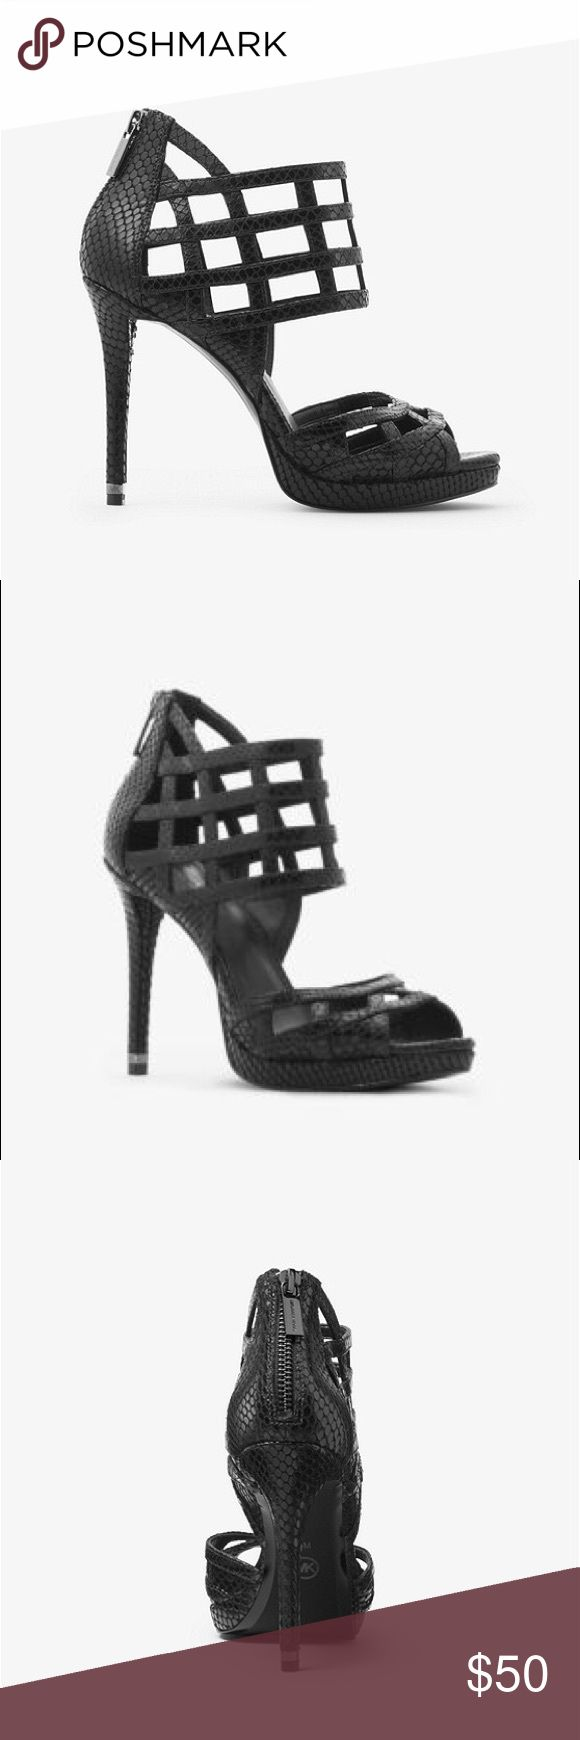 """Michael Kors Trinity Embossed leather sandal. Michael Kors brand new black Trinity platform sandal. This snake Embossed leather heels are defined by an array of interlocking straps and a towering heel. Heel height is 4.5"""". Michael Kors Shoes Heels"""